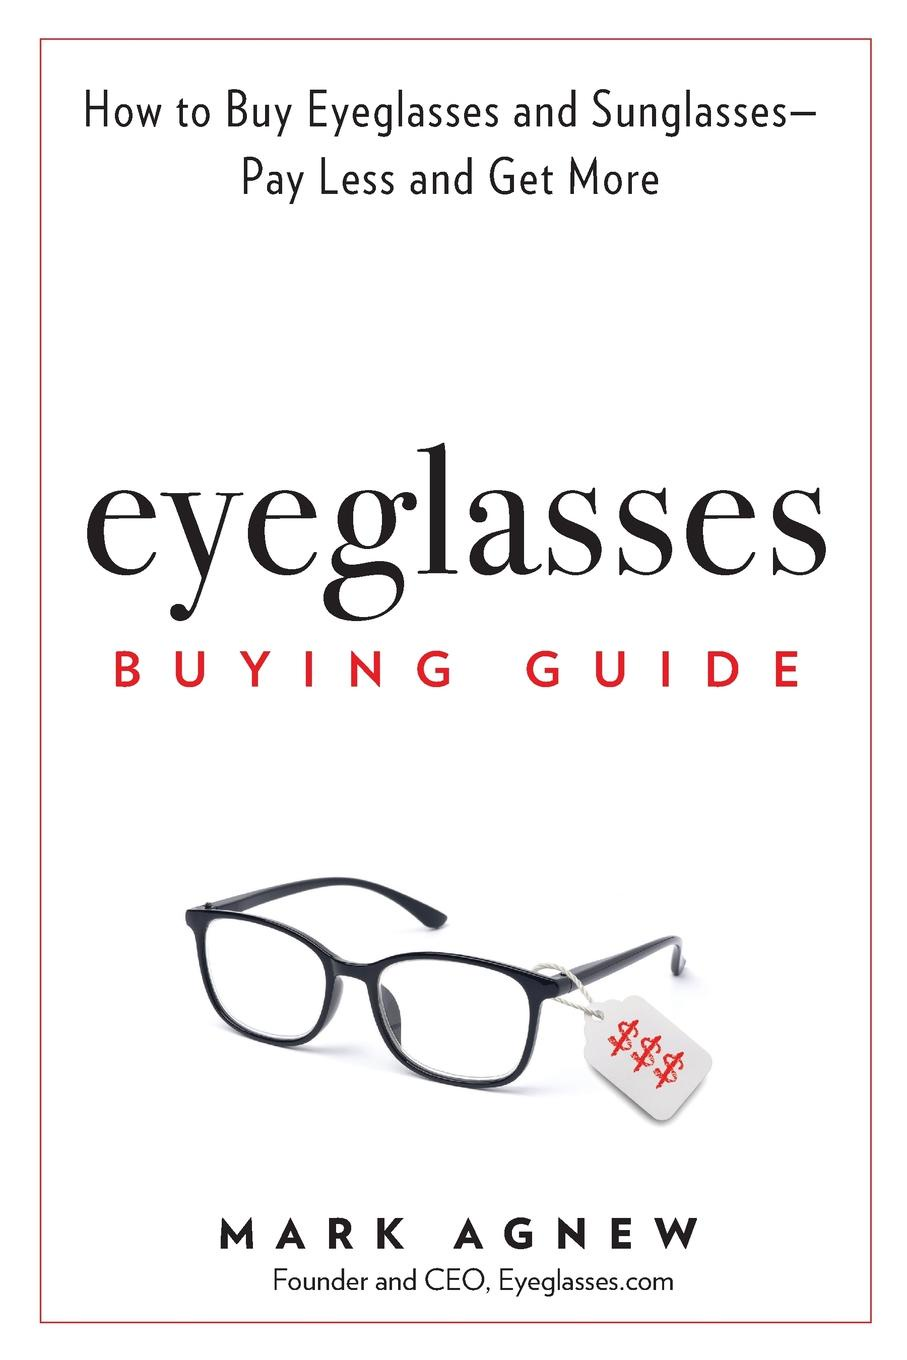 Mark Agnew Eyeglasses Buying Guide. How to Buy Eyeglasses and Sunglasses -- Pay Less and Get More sahoo bike bicycle helmet buy one get two free with a pair of gloves